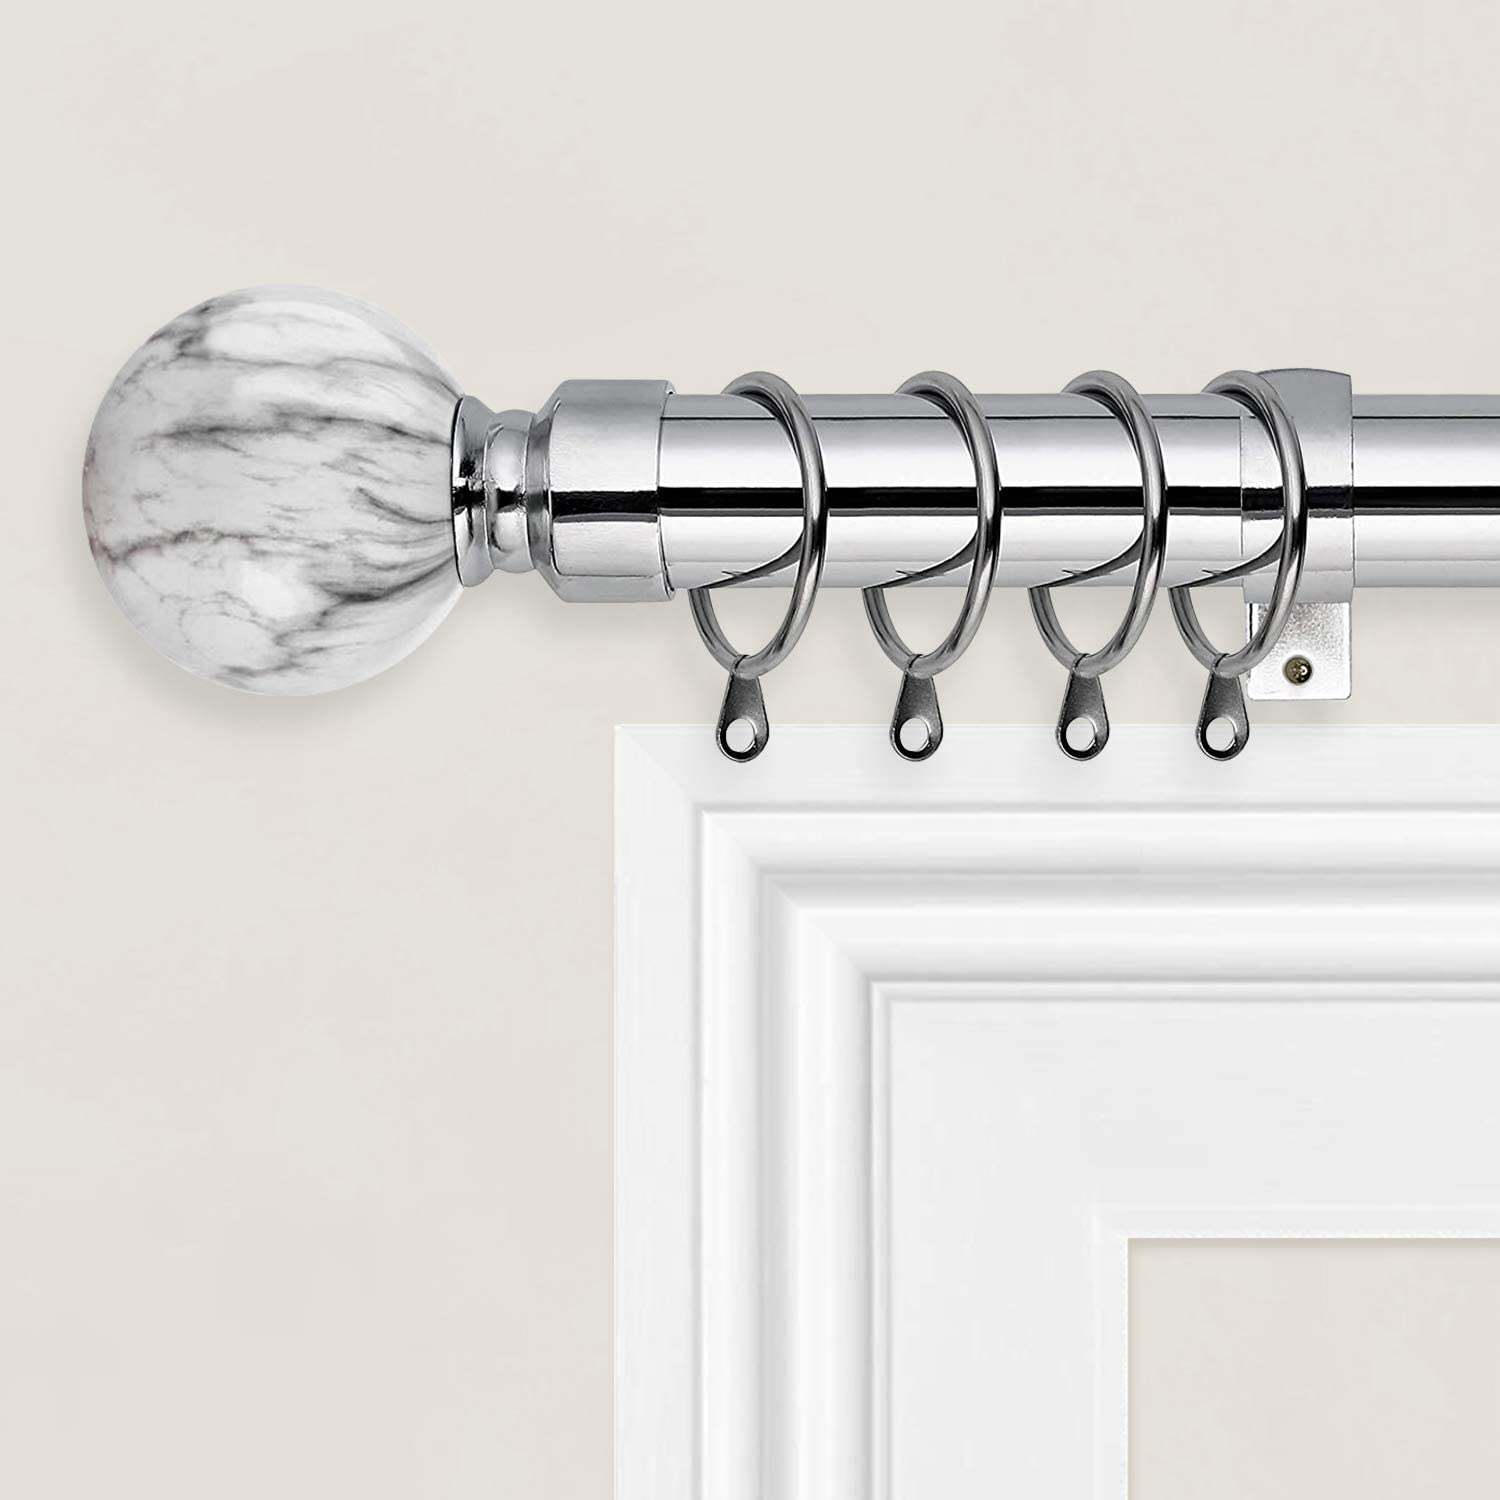 Oxford Homeware Curtain Pole Extendable (Chrome, 70-120 Cm, 28-48 Inches) - Includes Marble Ball Finials, Rings, Brackets & Fittings Set